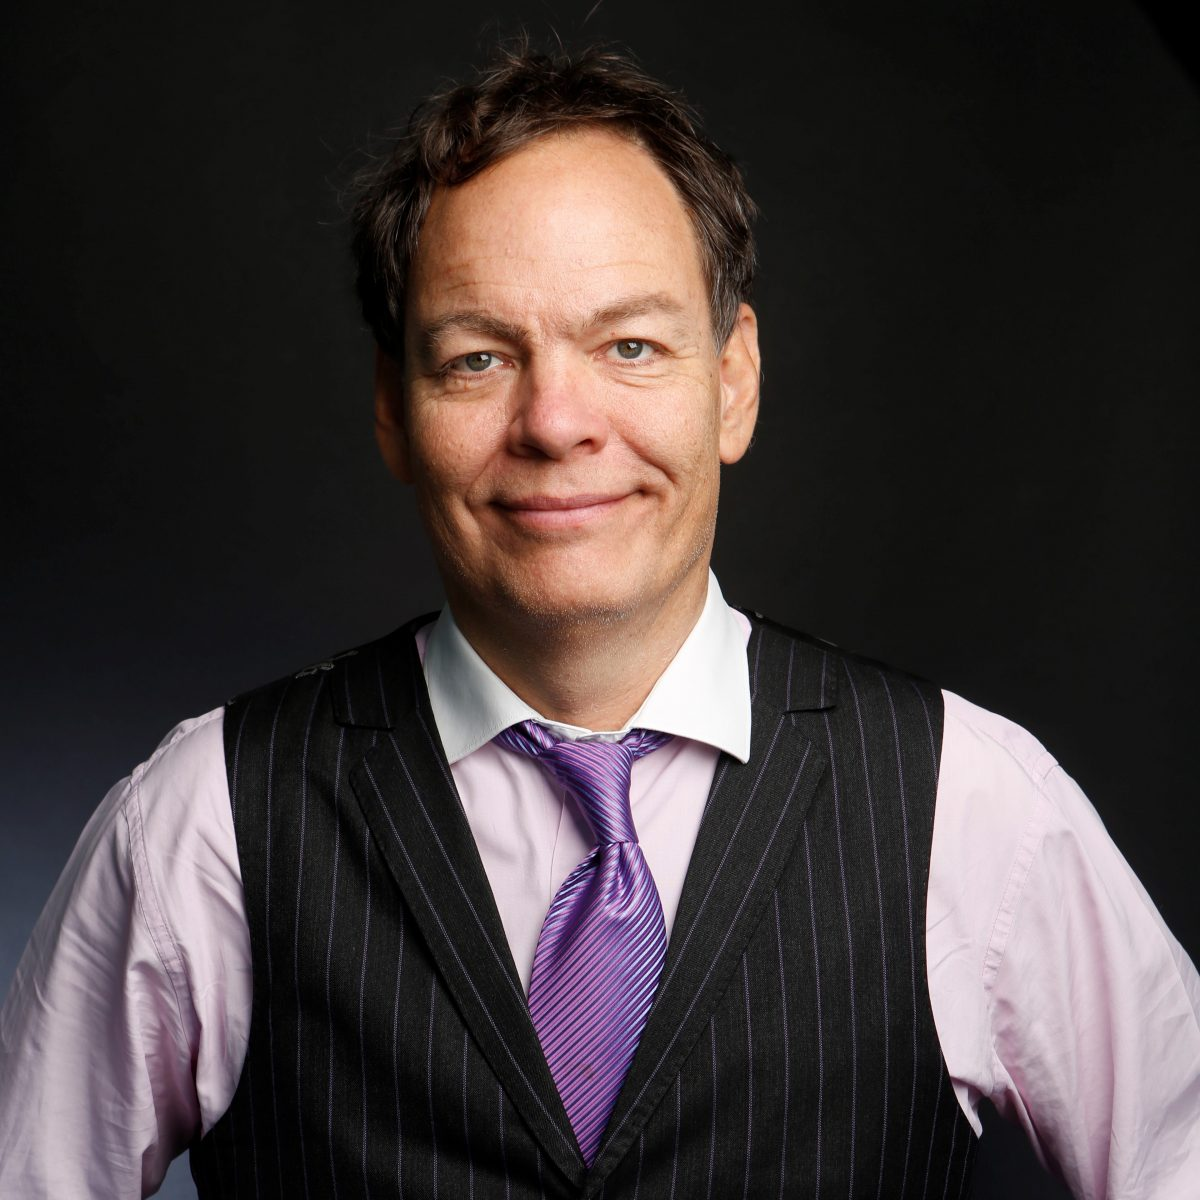 Max Keiser Reaffirms $100k Bitcoin Price Prediction https://t.co/b2gh4rnPXR  Crypto Cashflow https://t.co/W3mYhmQjSG